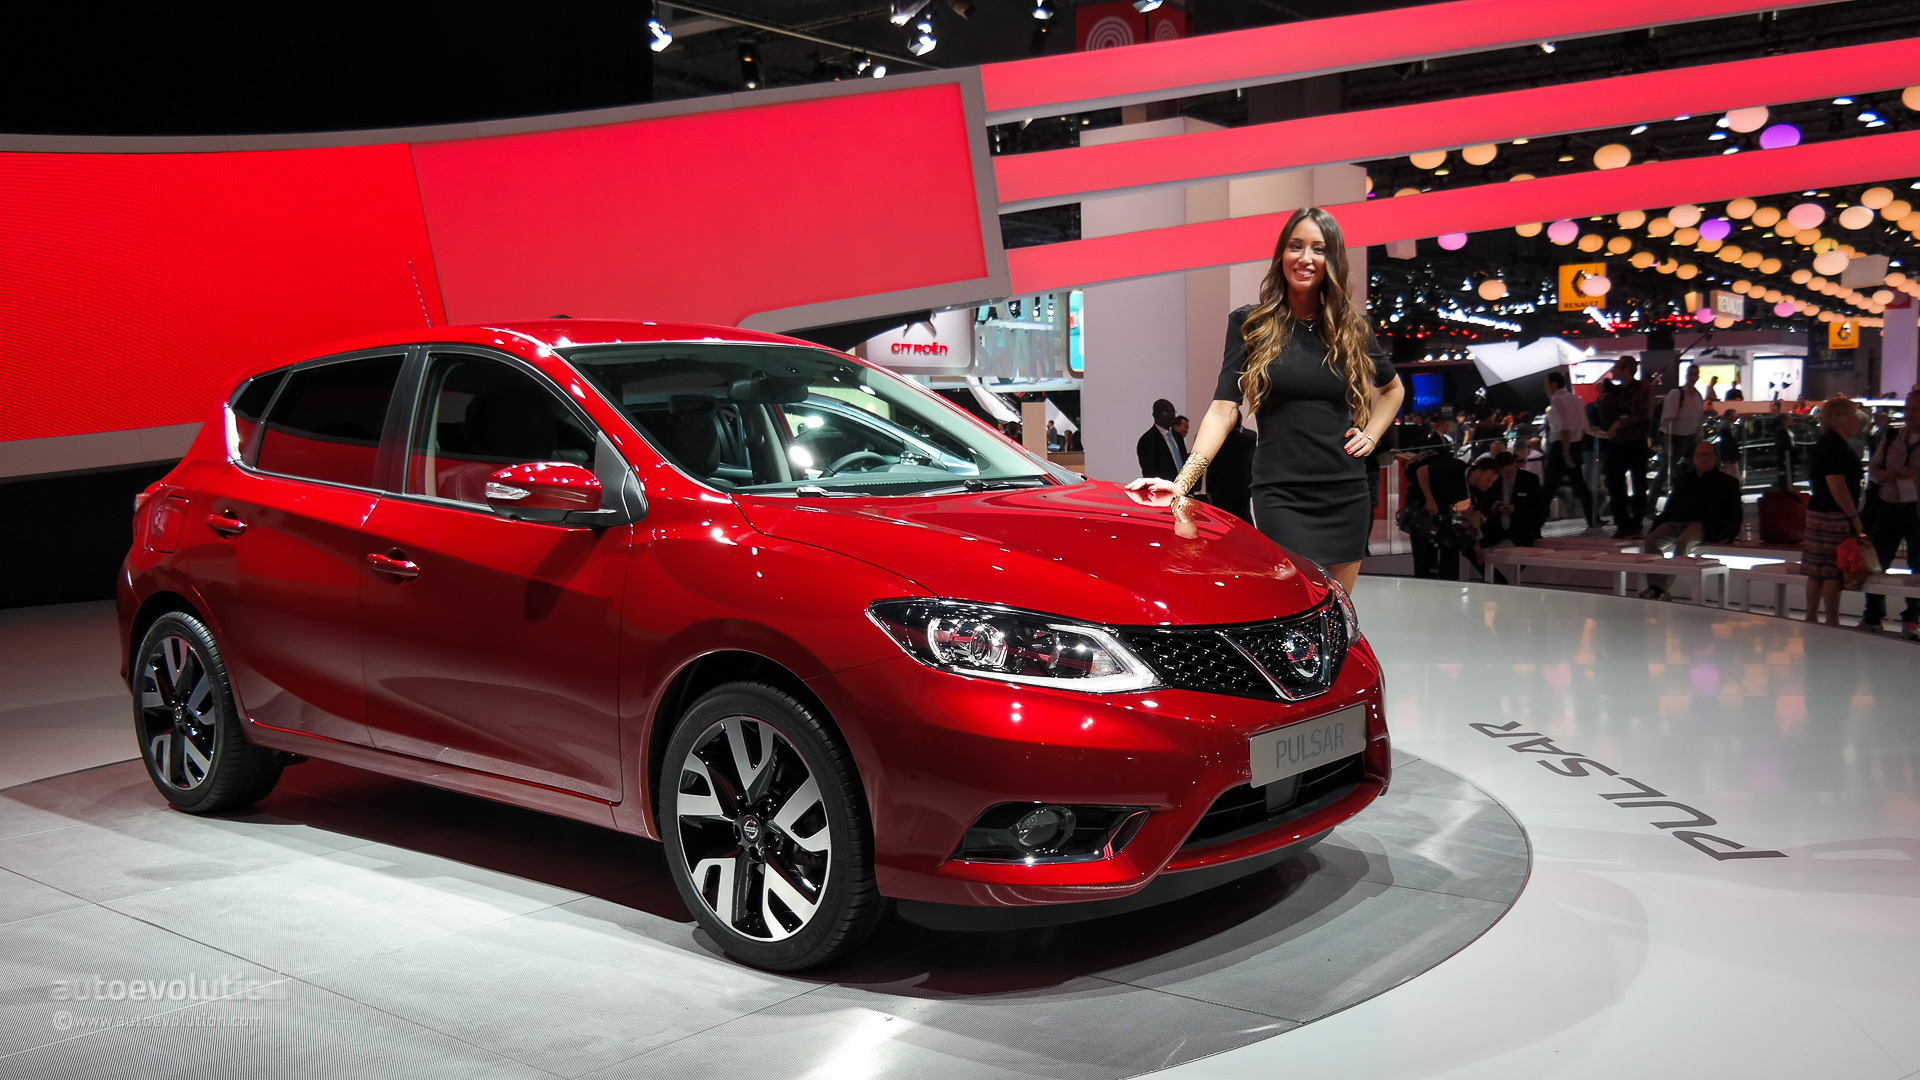 Nissan Pulsar Hatchback Discontinued From European Lineup Autoevolution